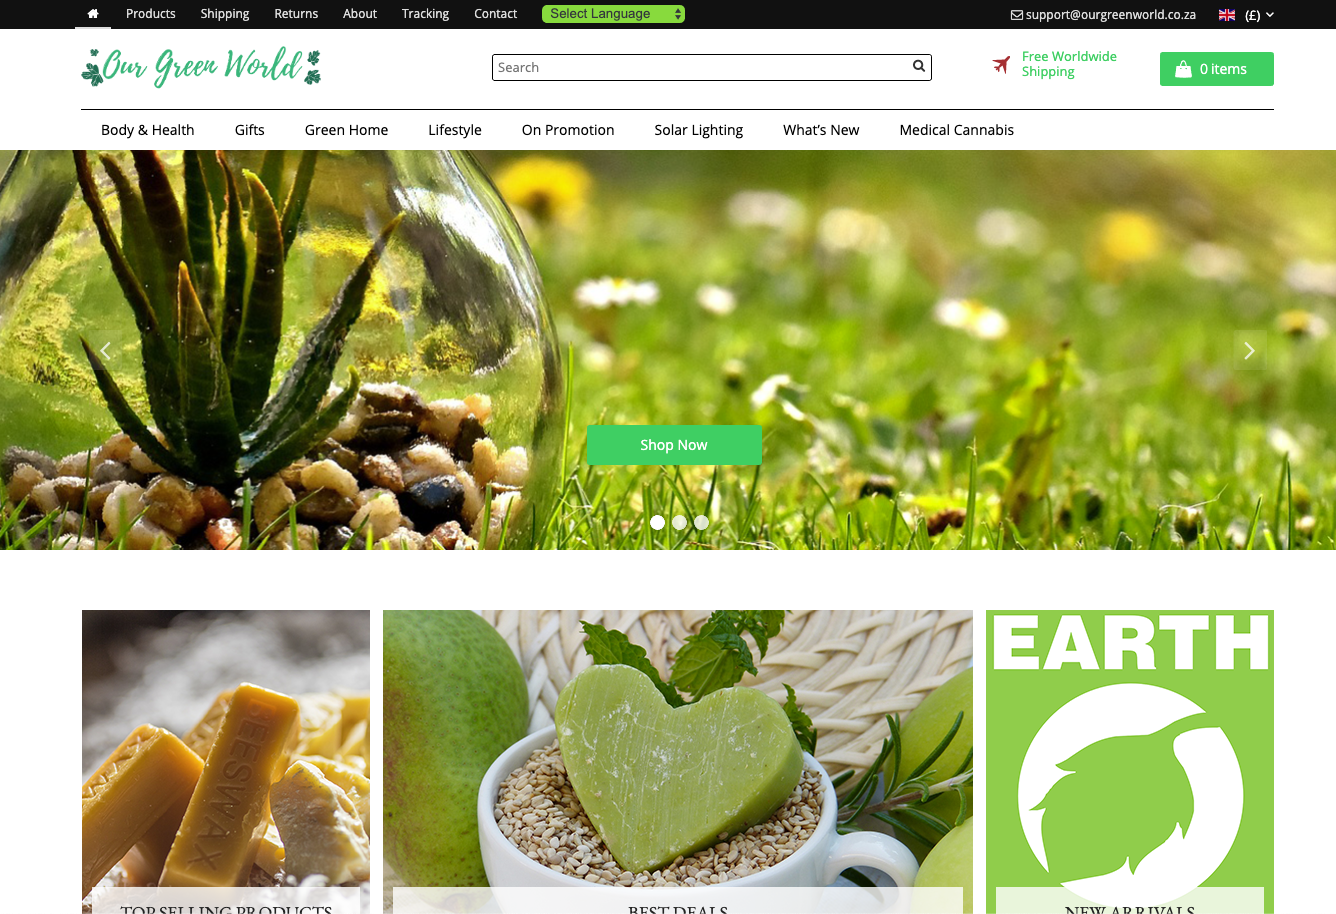 eCommerce Site: Our Green World | Environmental | 100+ Products